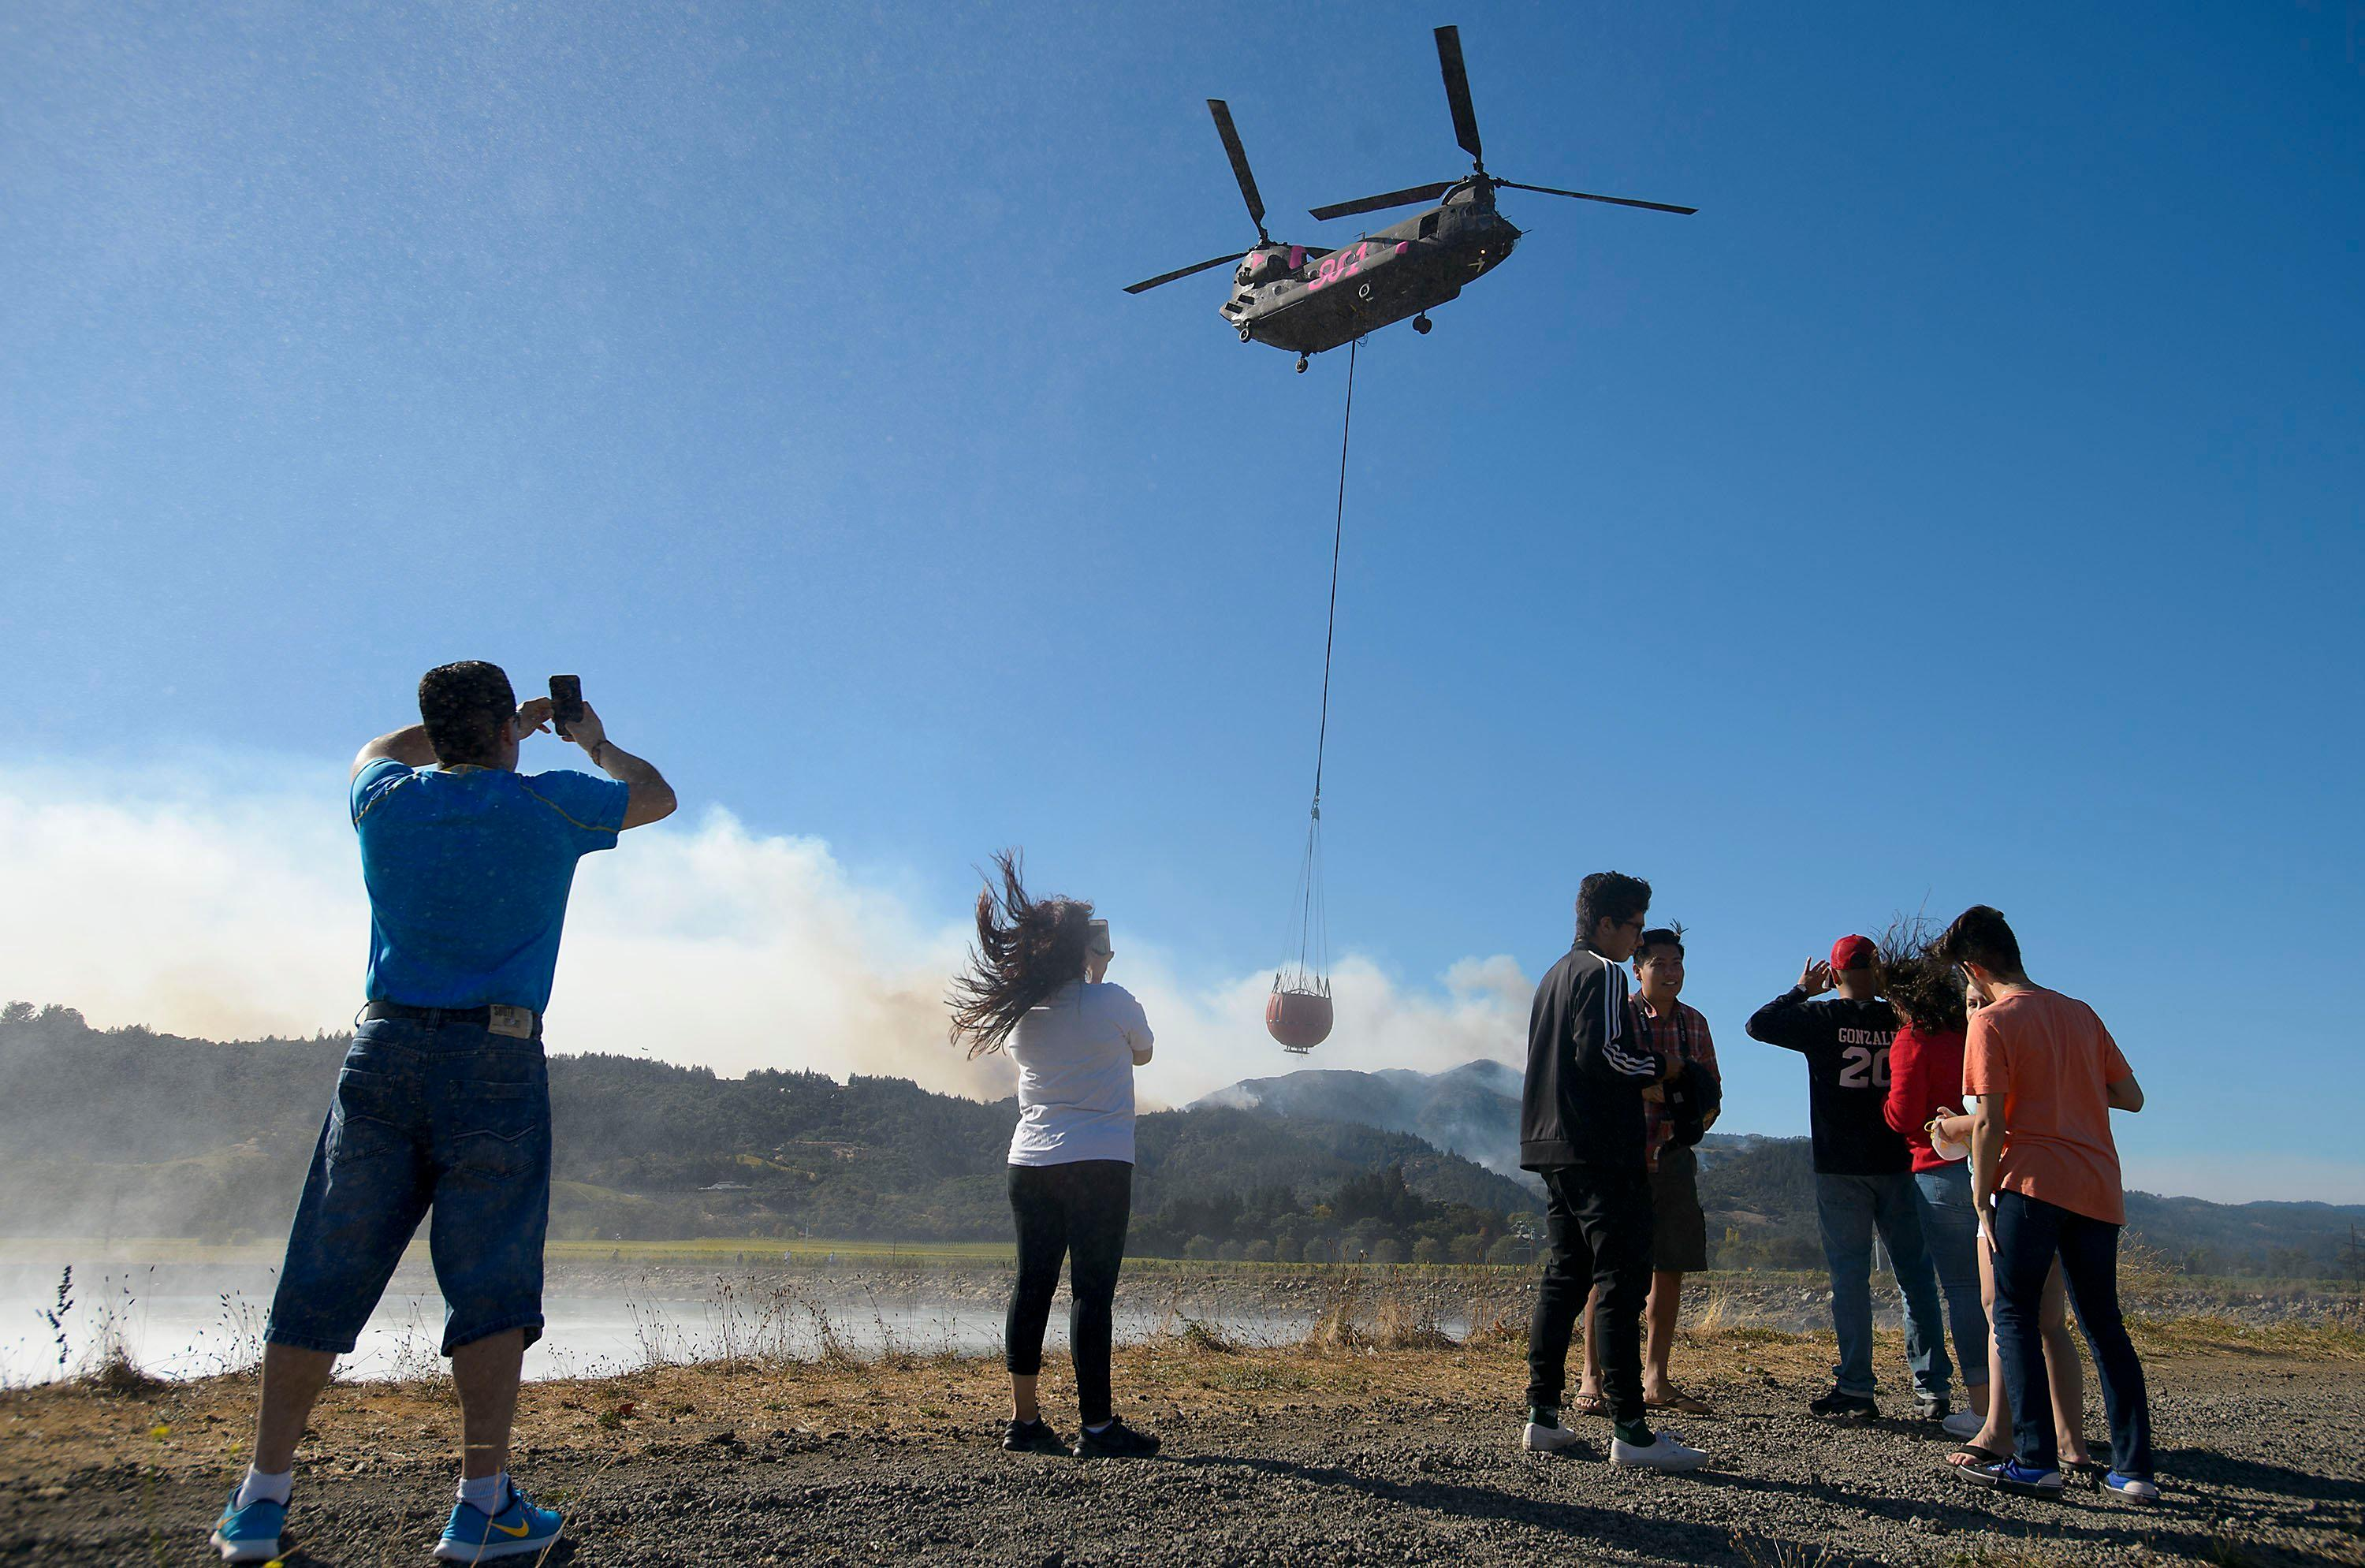 Hundreds of spectators watch as about a half-dozen helicopters fill their buckets with water from a reservoir on Dwyer Road in Yountville, Calif., on Saturday, Oct. 14, 2017. (Randall Benton /The Sacramento Bee via AP)